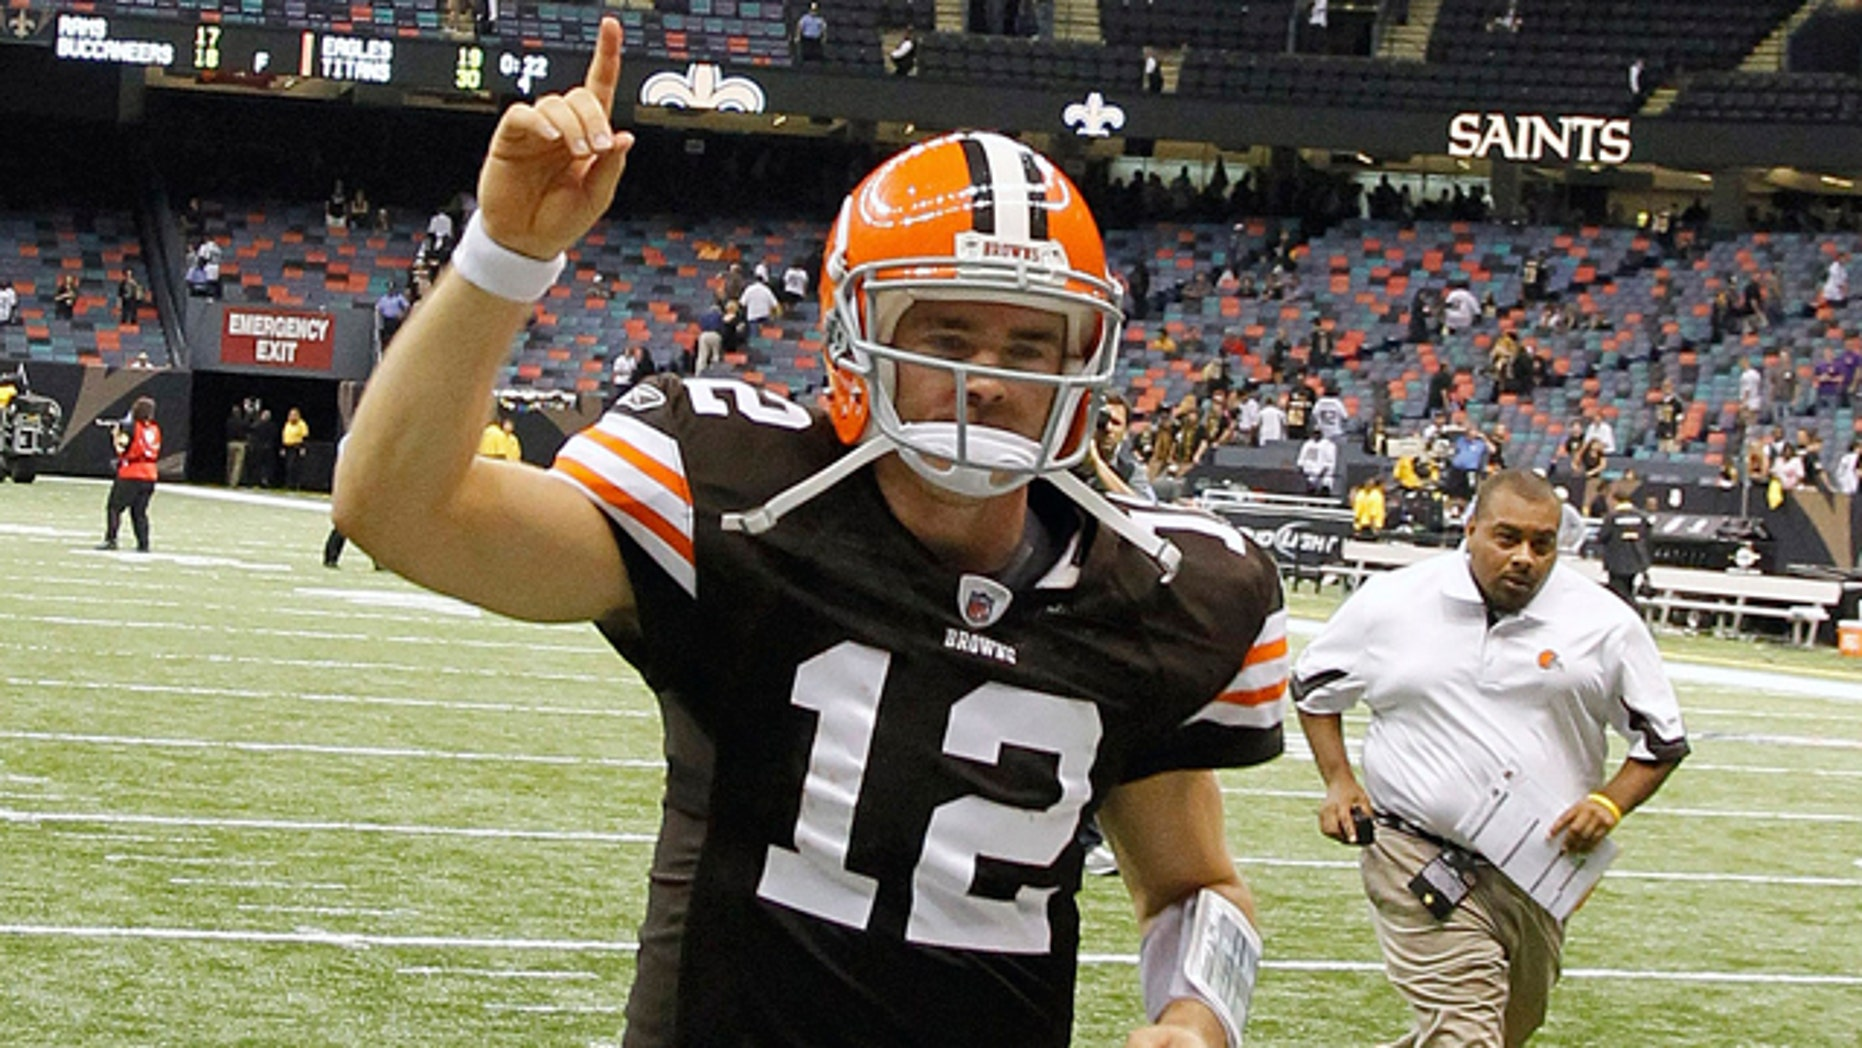 Oct. 24: Cleveland Browns quarterback Colt McCoy (12) runs off the field after his NFL football game against the New Orleans Saints at the Louisiana Superdome in New Orleans.